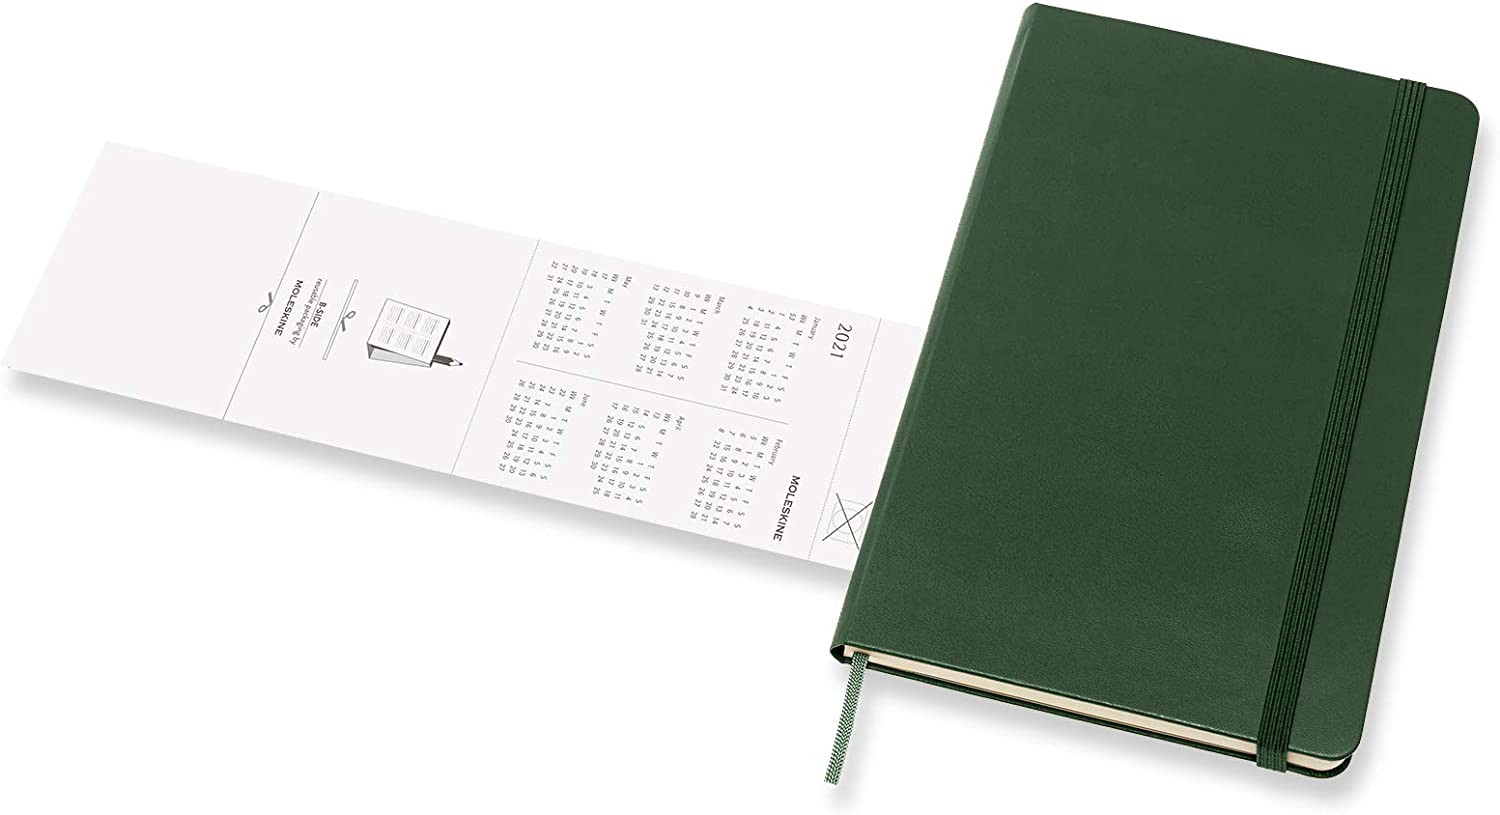 Weekly Planner 2020//2021 Colour Myrtle Green Weekly Notebook with Hard Cover and Elastic Closure Size Large 13 x 21 cm 18-Month Weekly Planner//Diary 208 Pages Moleskine